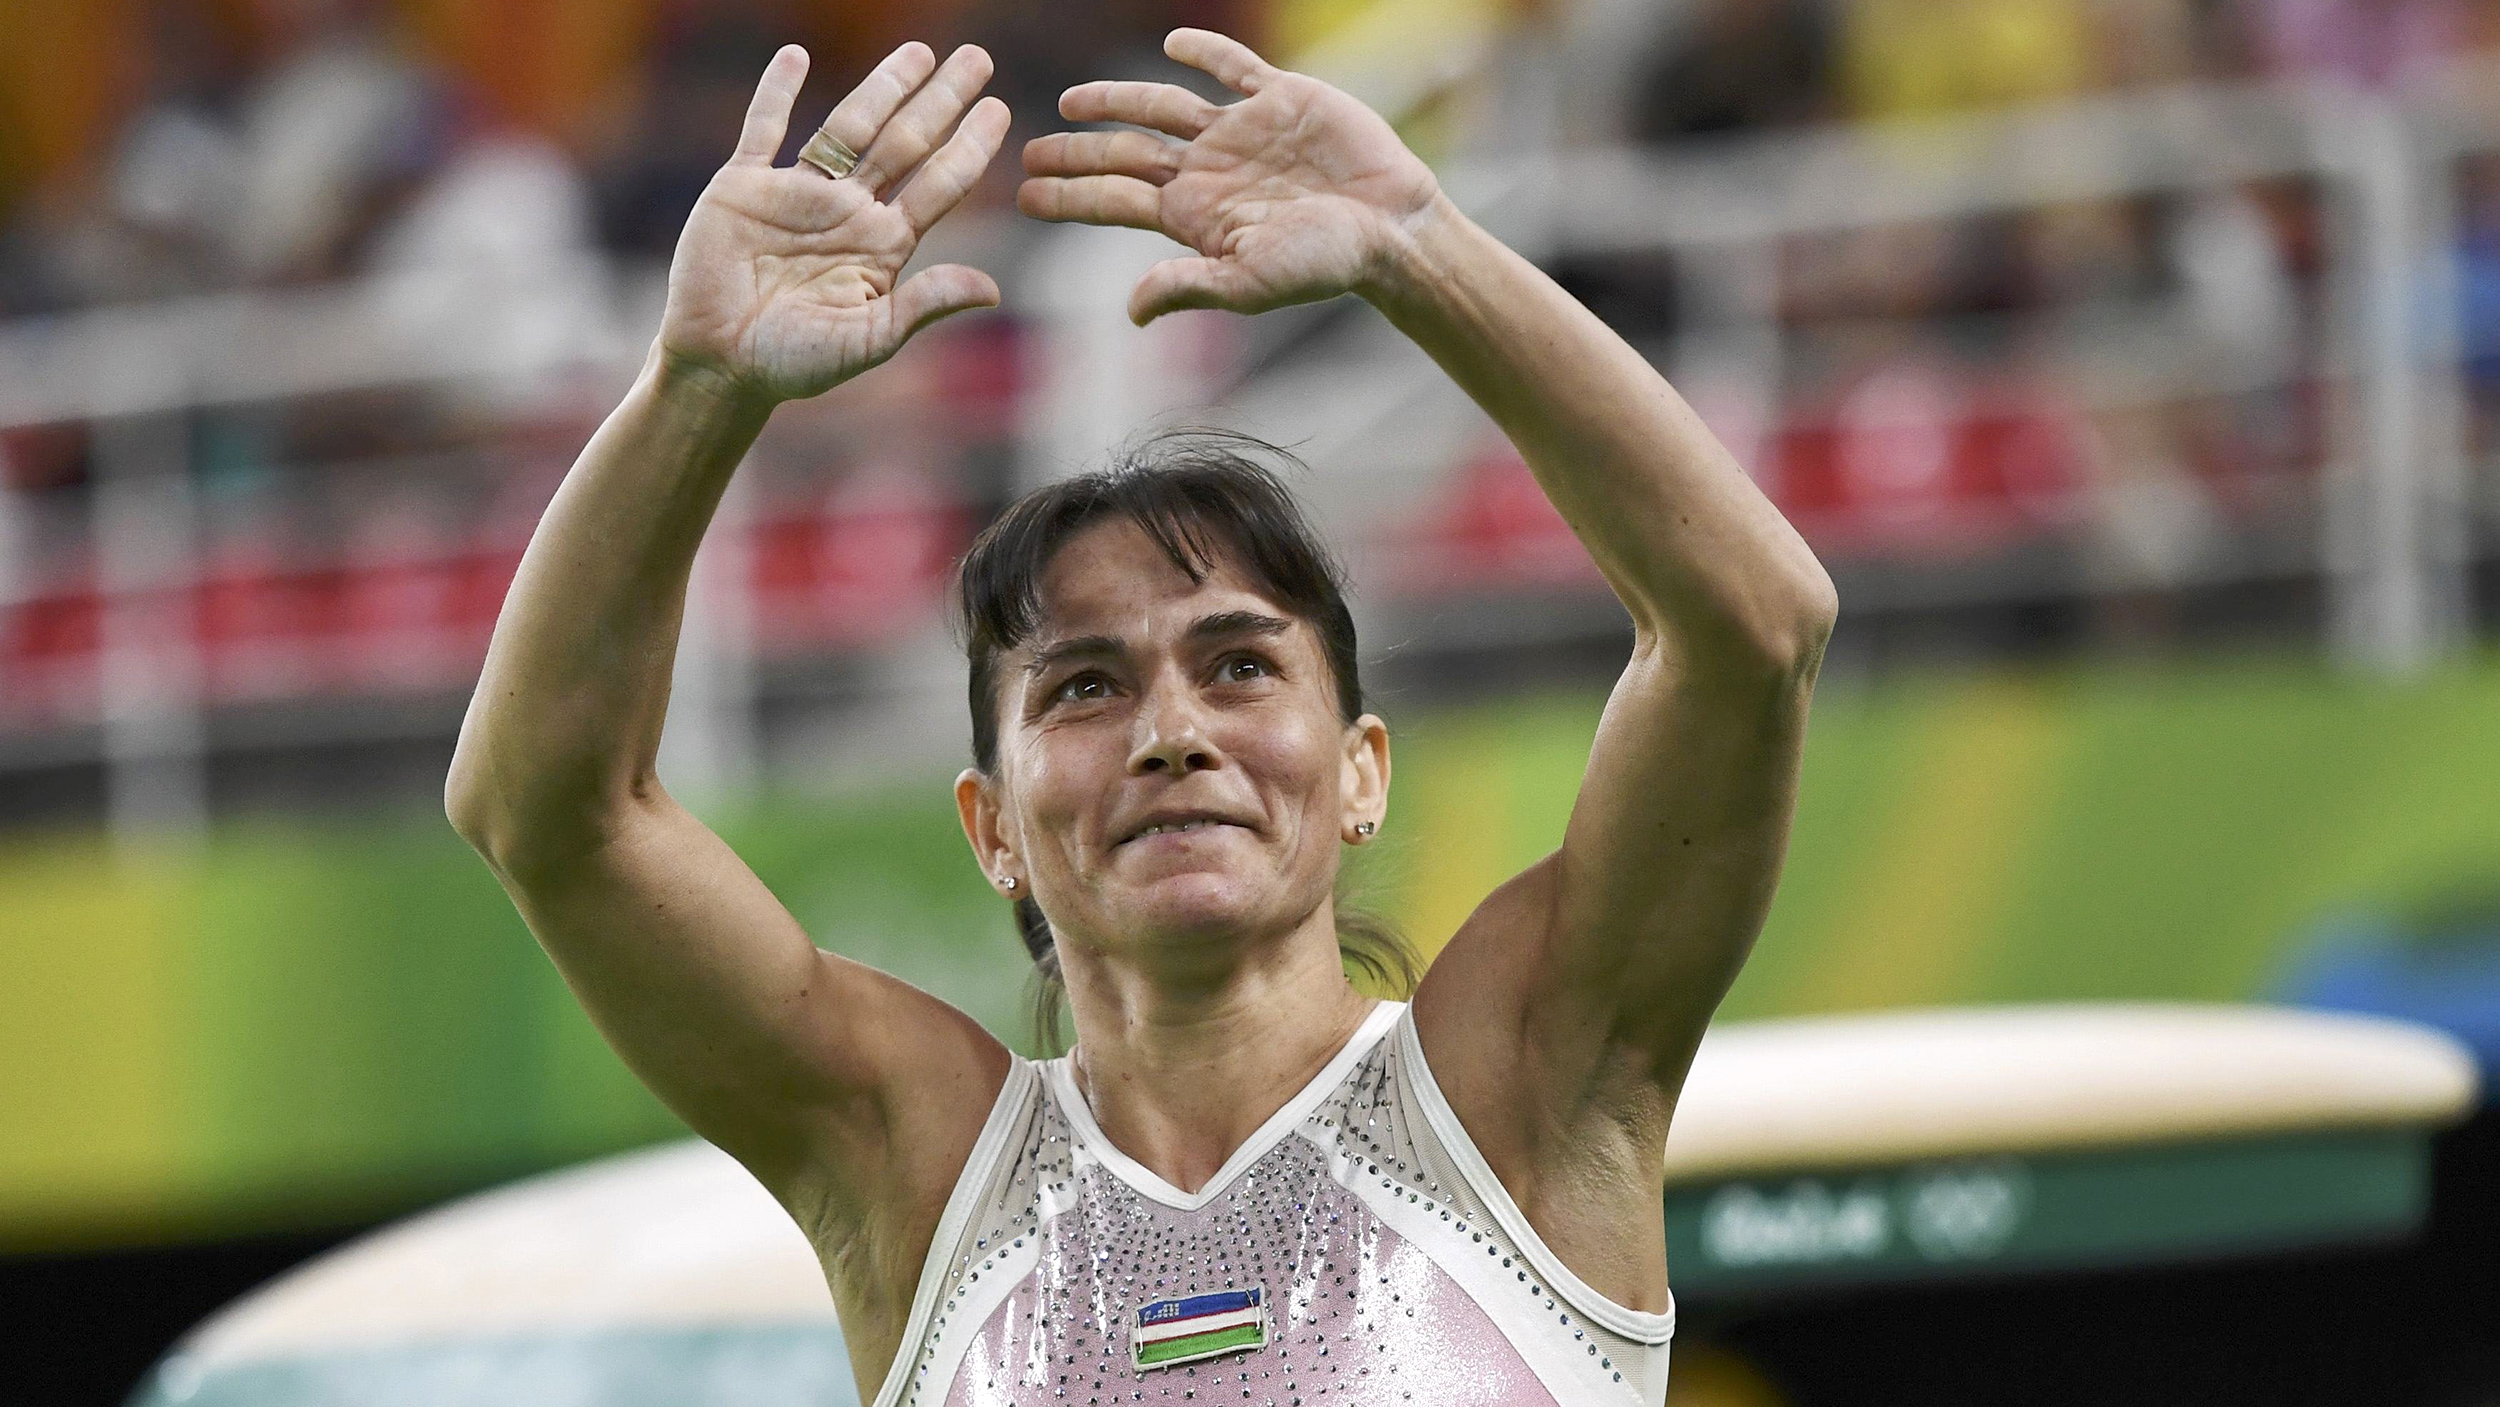 41 Year Old Gymnast Among Olympians Defying Age In Rio